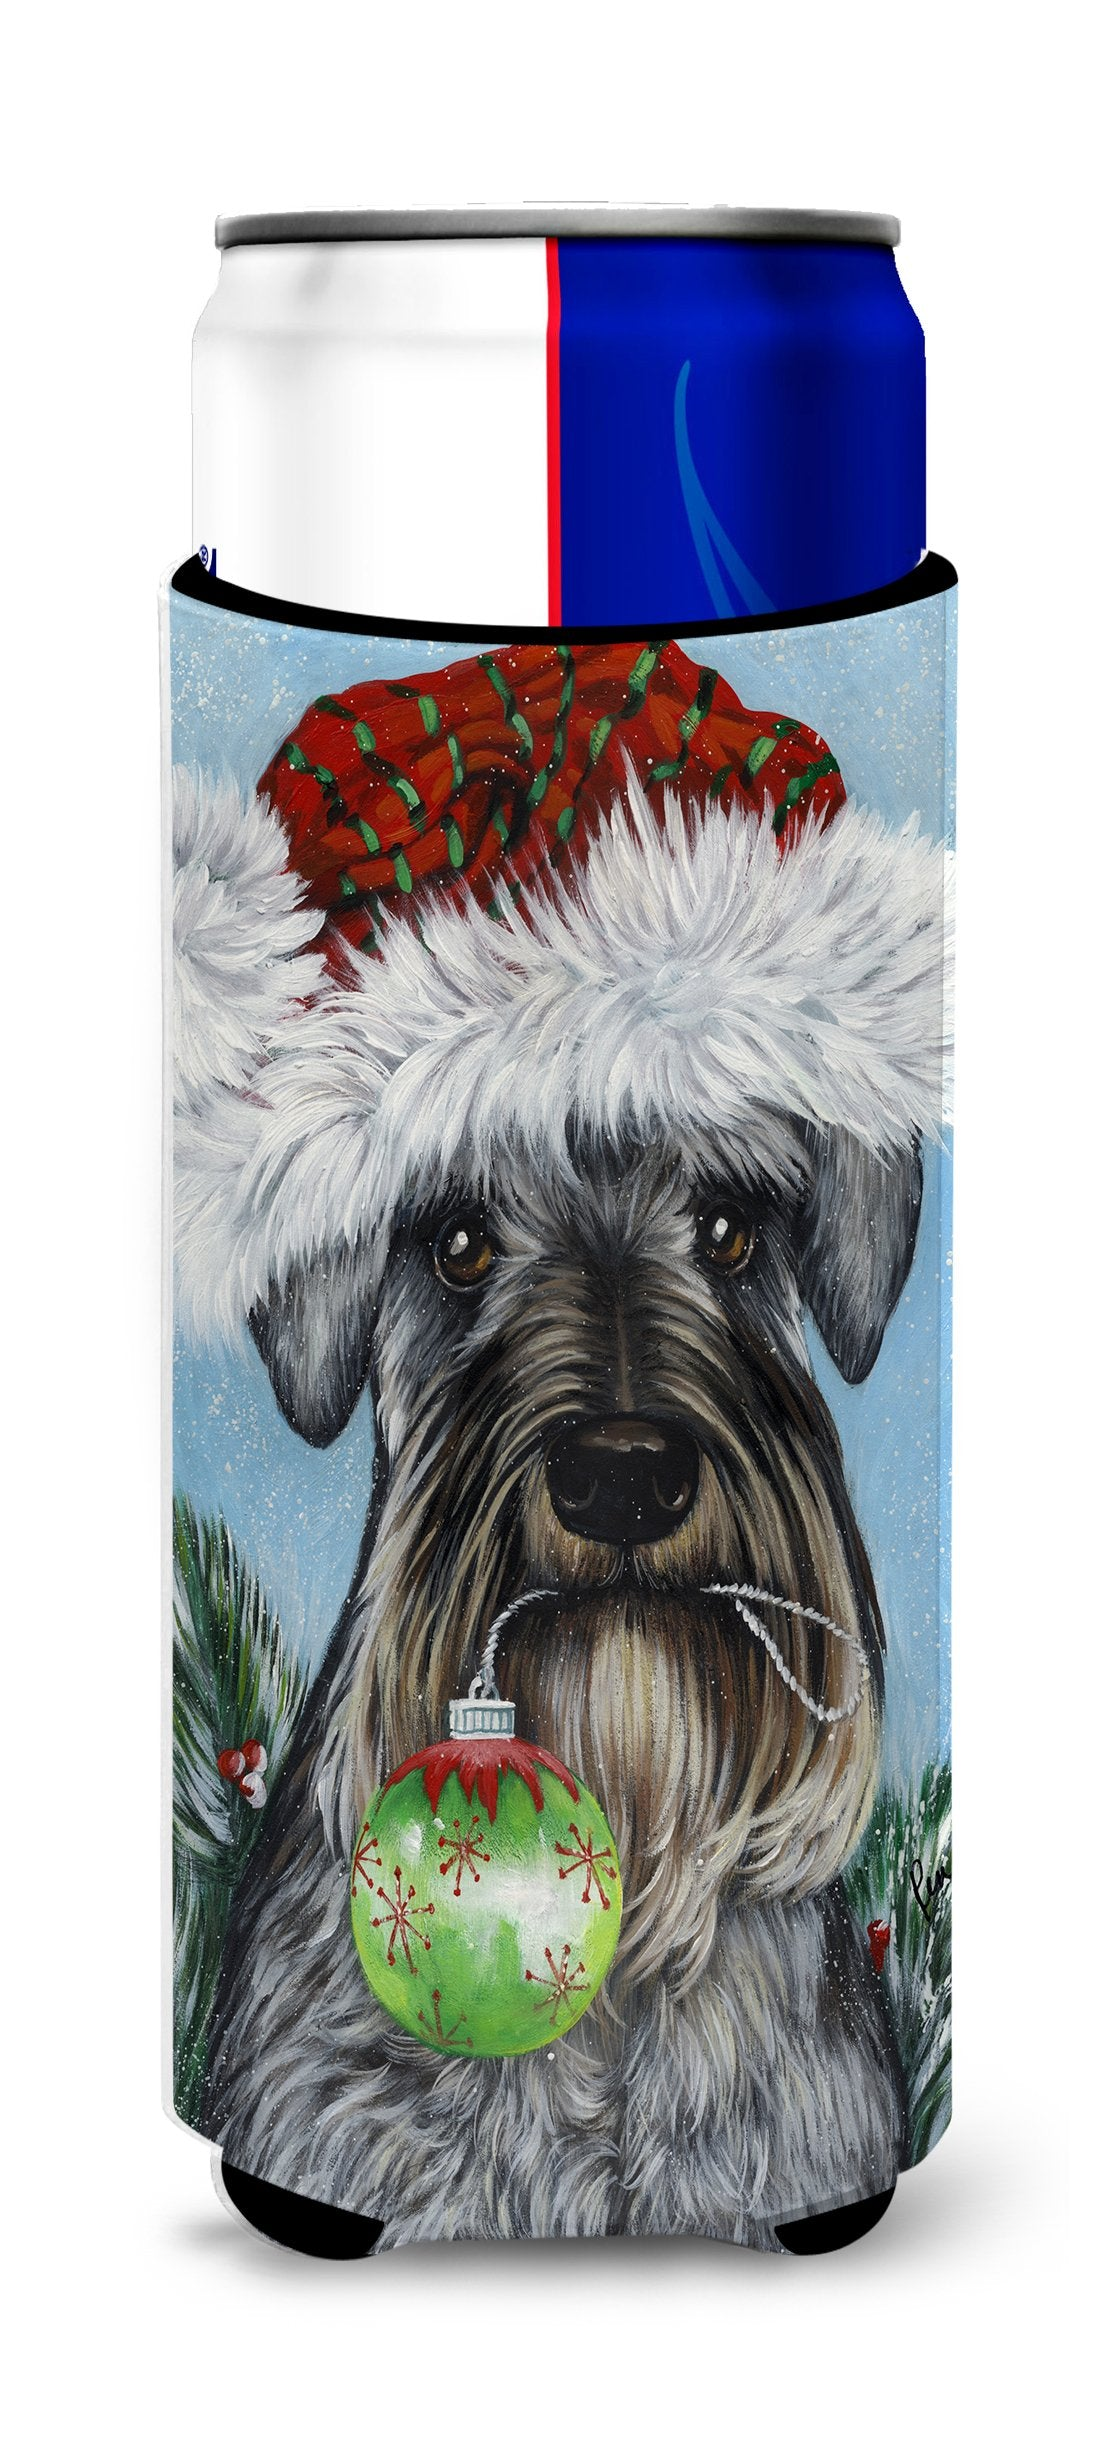 Schnauzer Christmas Pure at Heart Ultra Hugger for slim cans PPP3163MUK by Caroline's Treasures